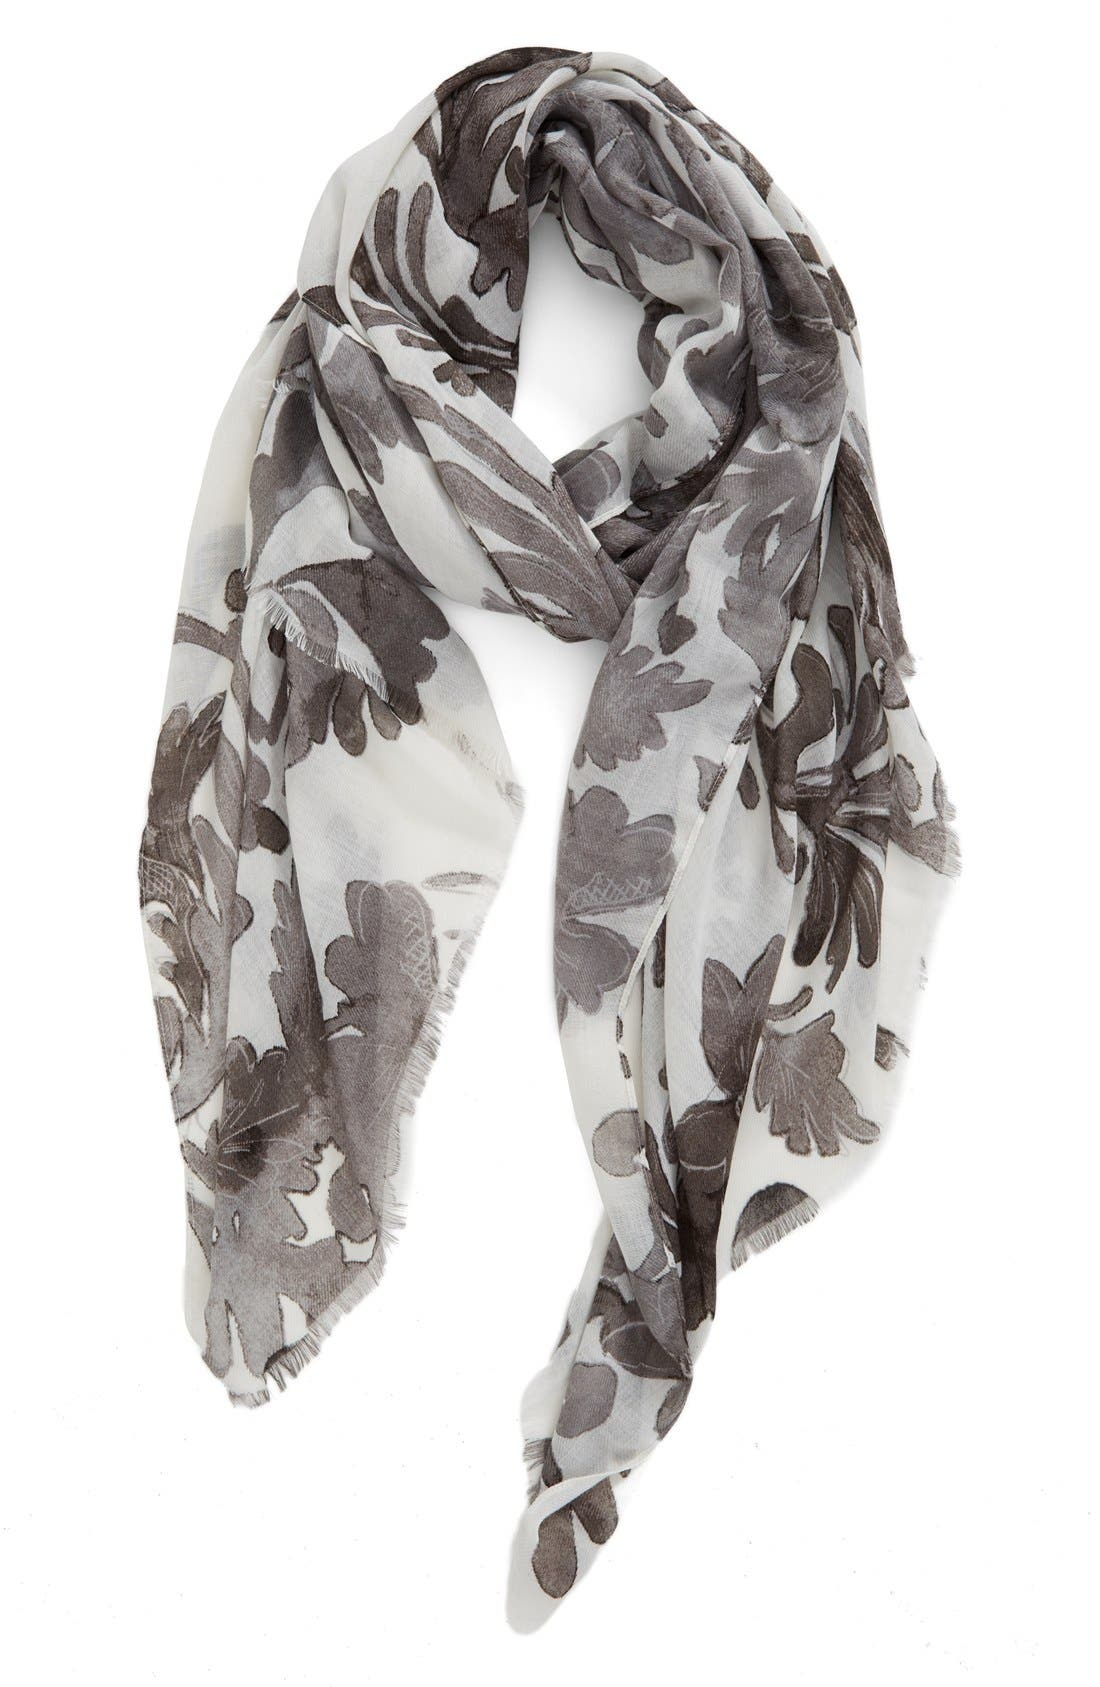 NORDSTROM 'Antique Damask' Print Scarf, Main, color, 030